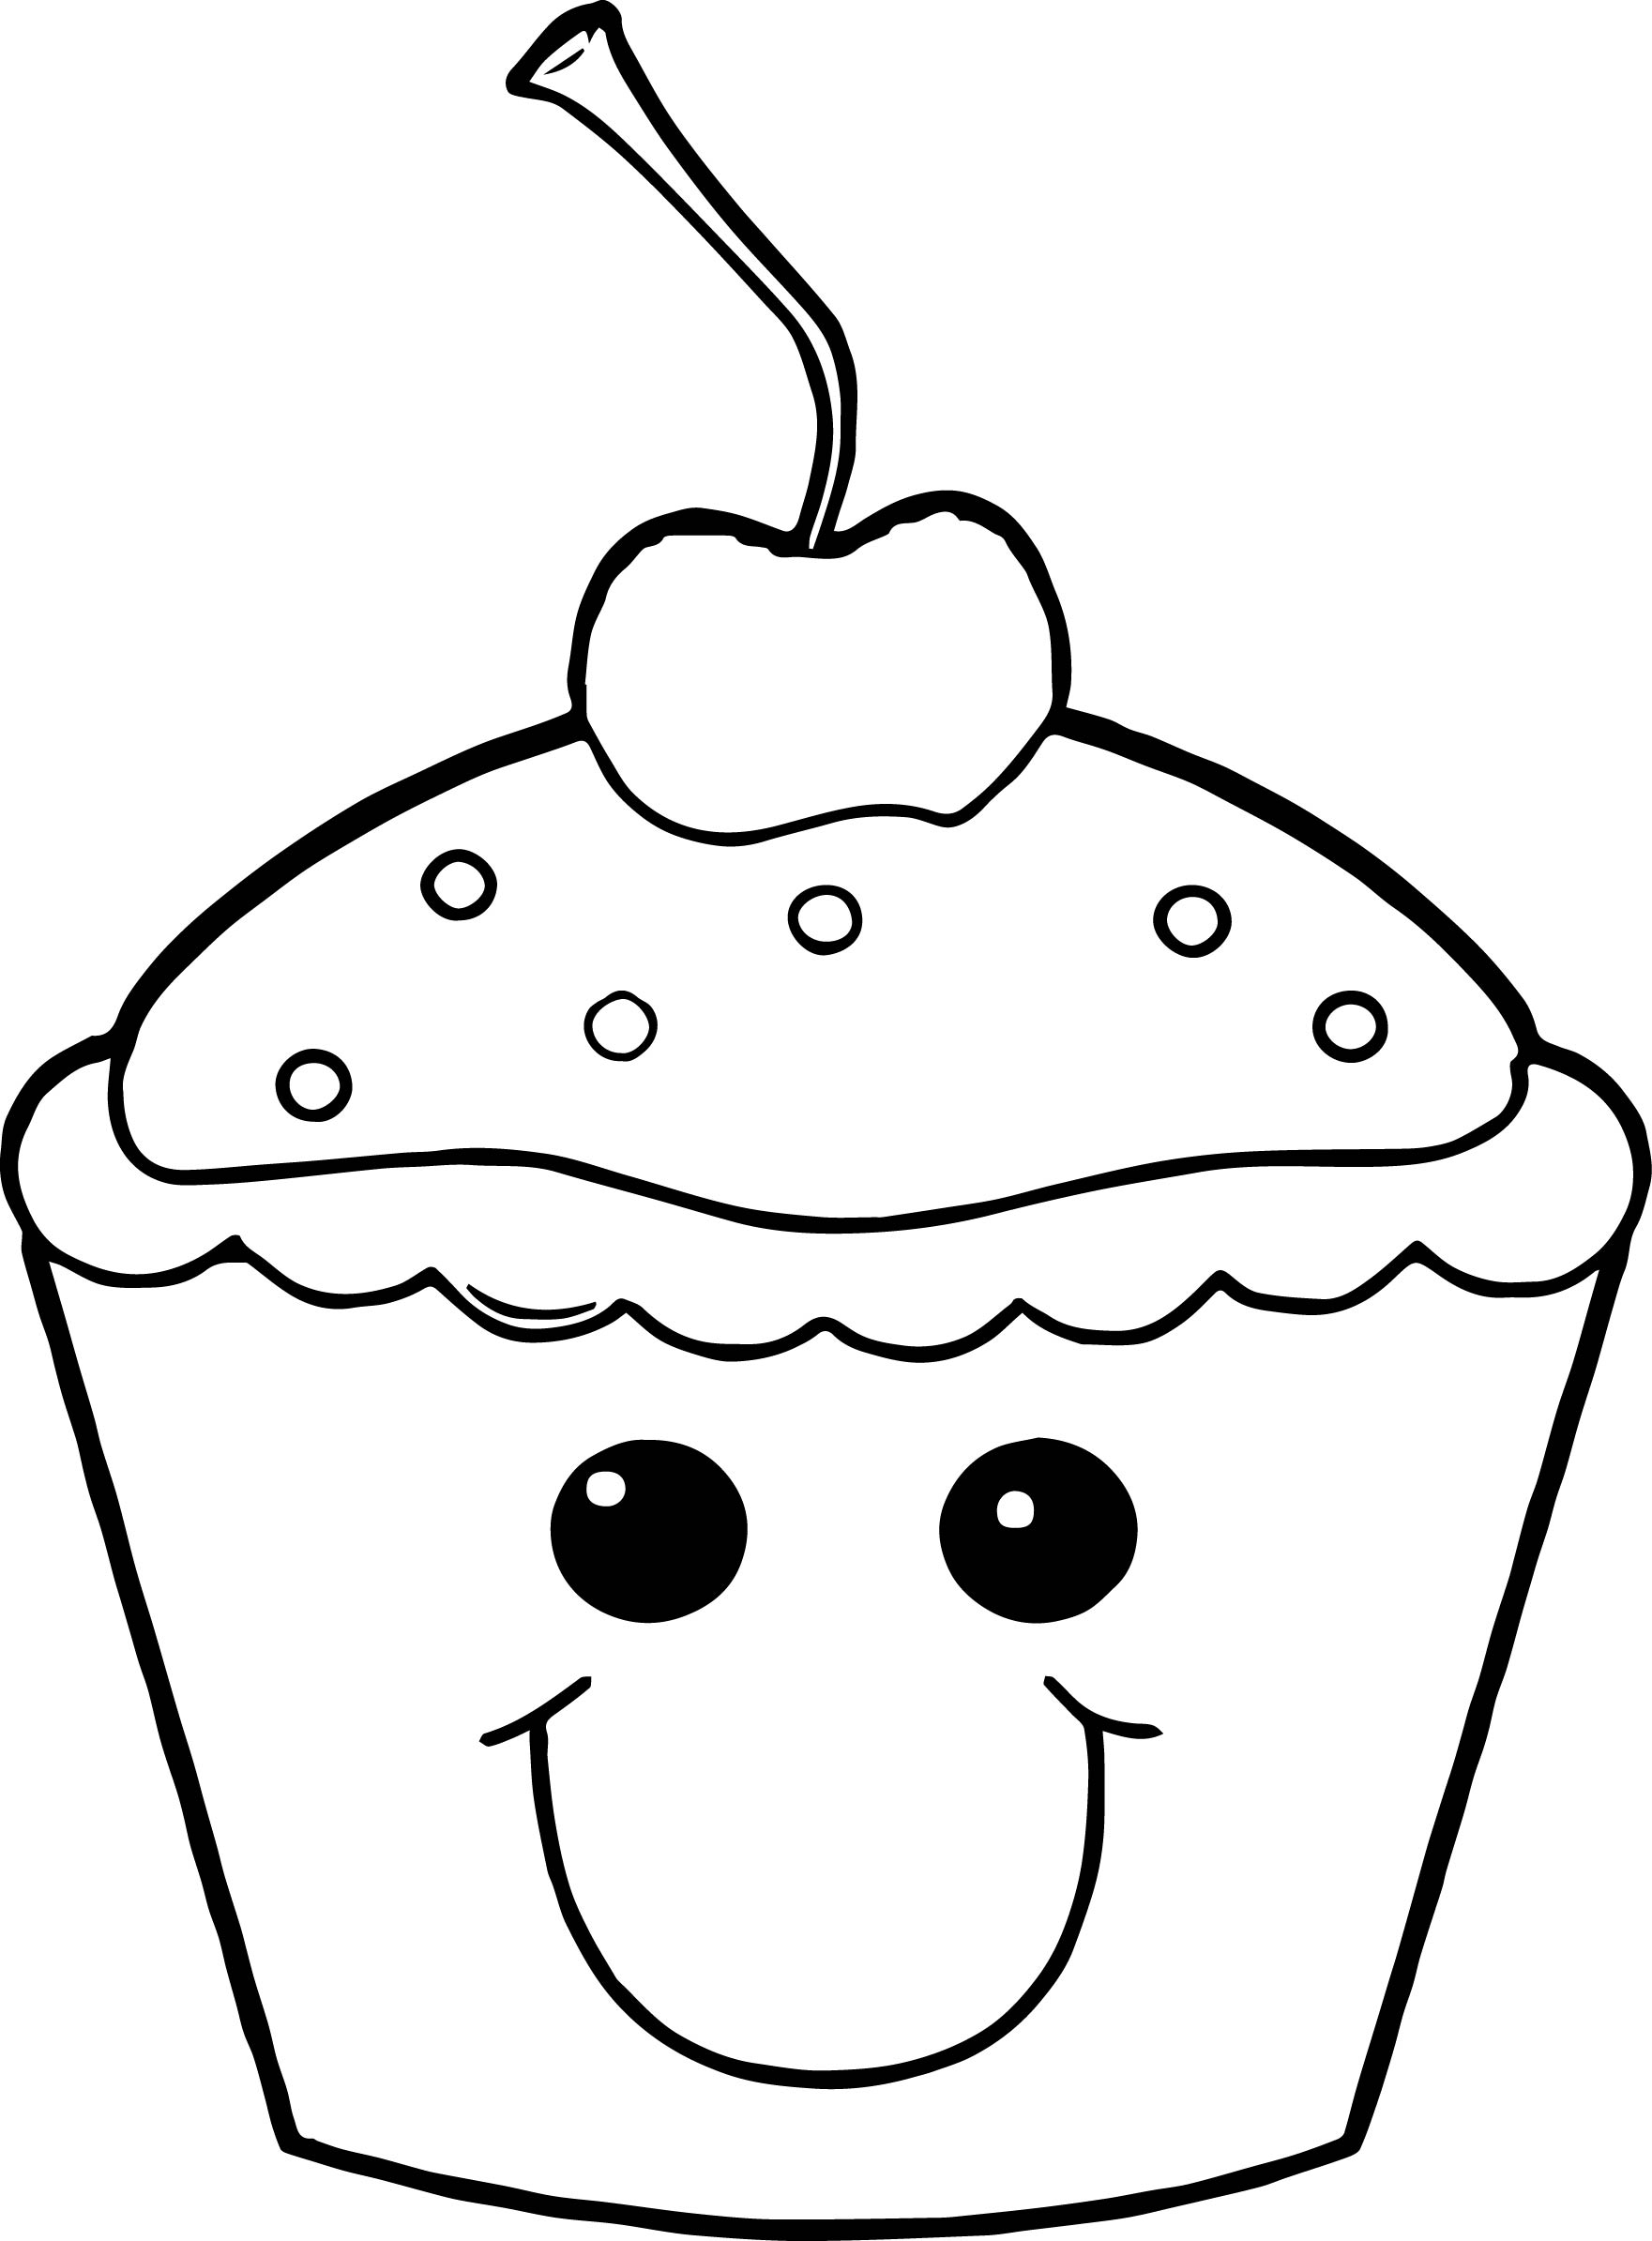 1761x2389 Cupcake Coloring Page Free Printable For Kids Pages Adults Simple